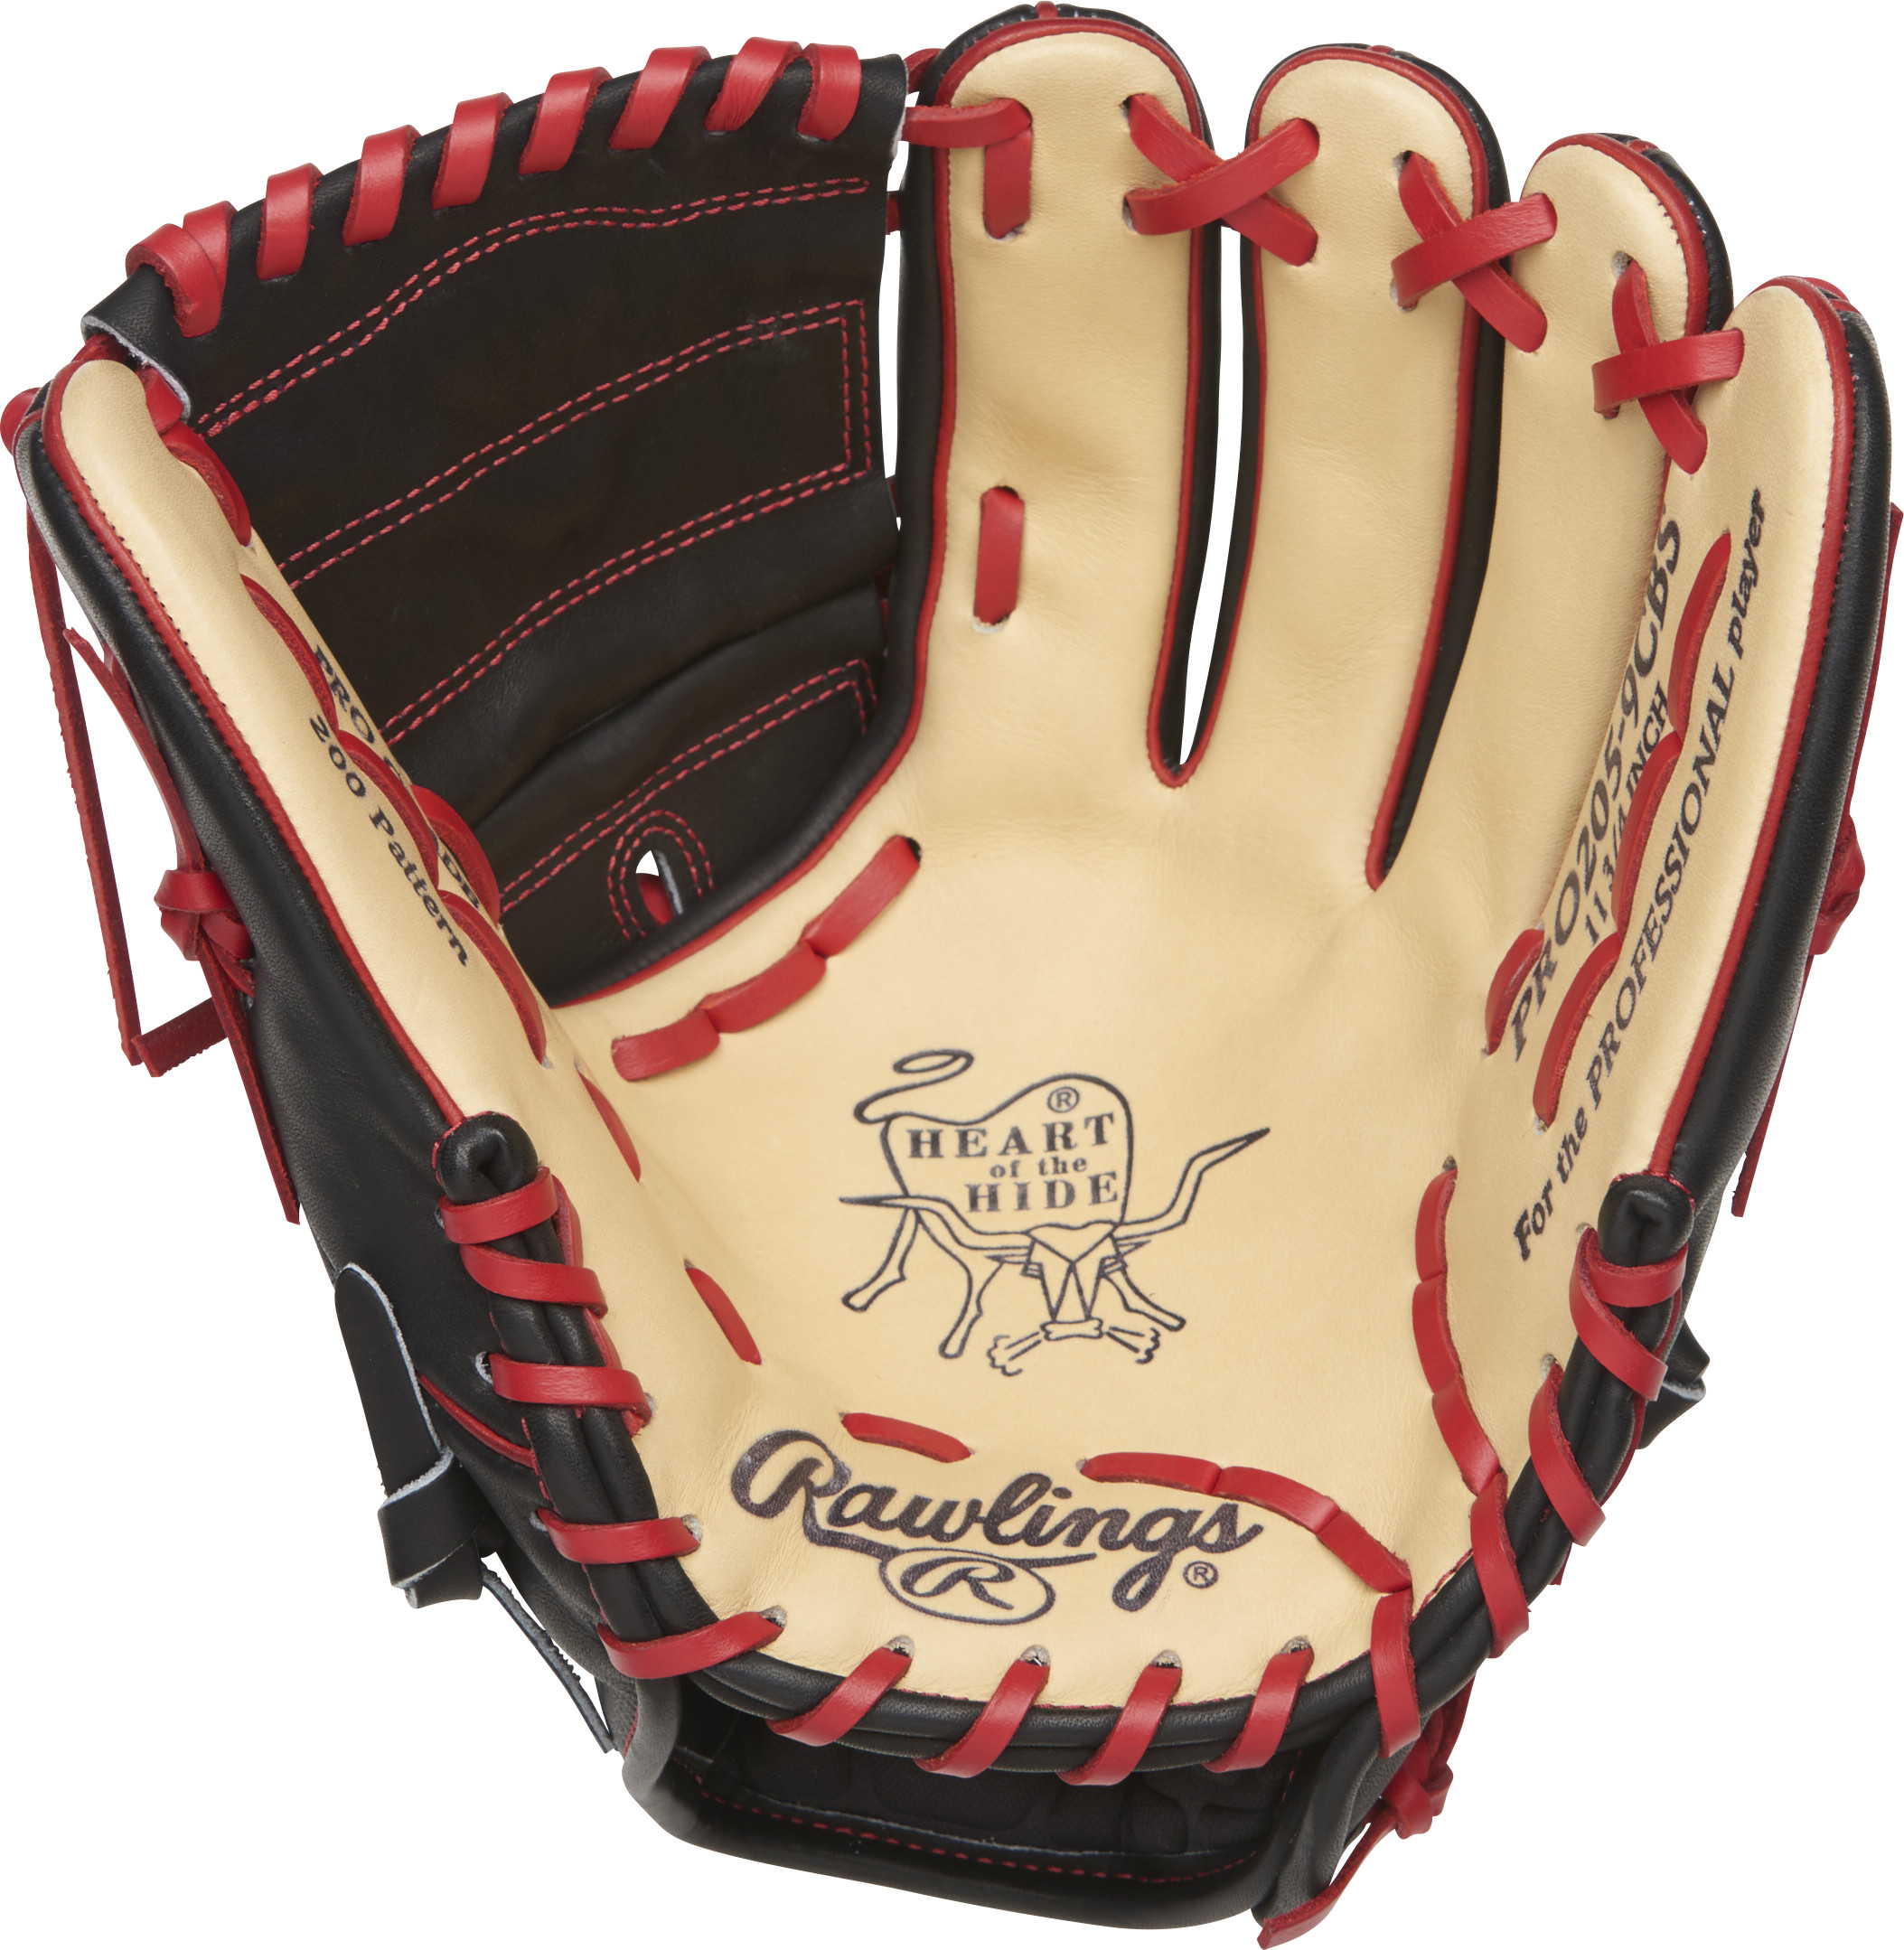 http://www.bestbatdeals.com/images/gloves/rawlings/PRO205-9CBS-1.jpg